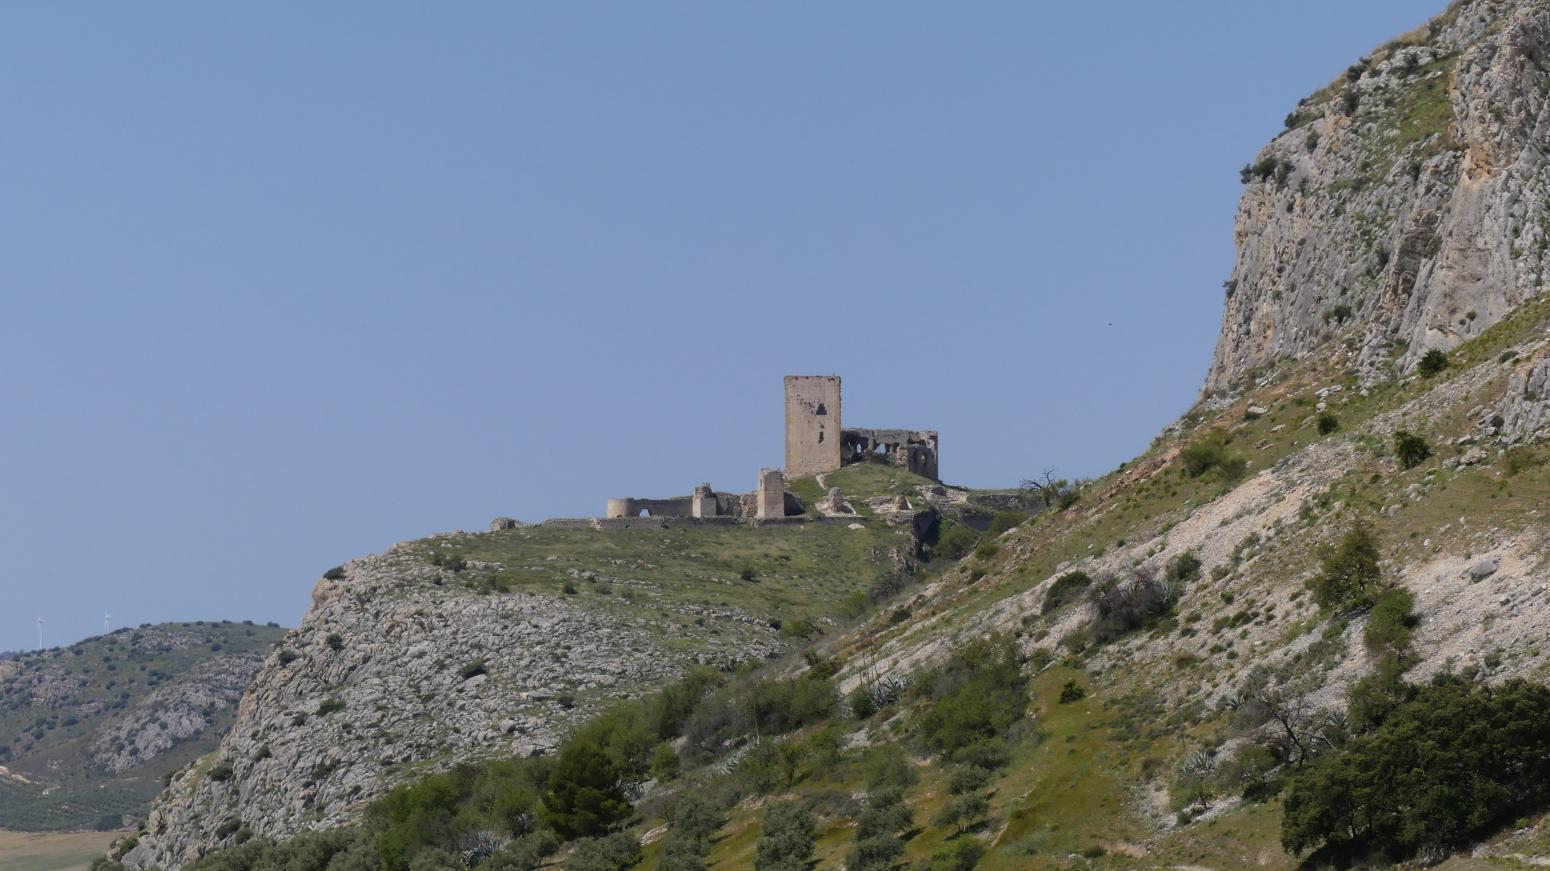 Imagen de GR 249.5. Section Stage 1. Campillos - Teba. The Castle of the Star south of the town of Teba, end of Stage